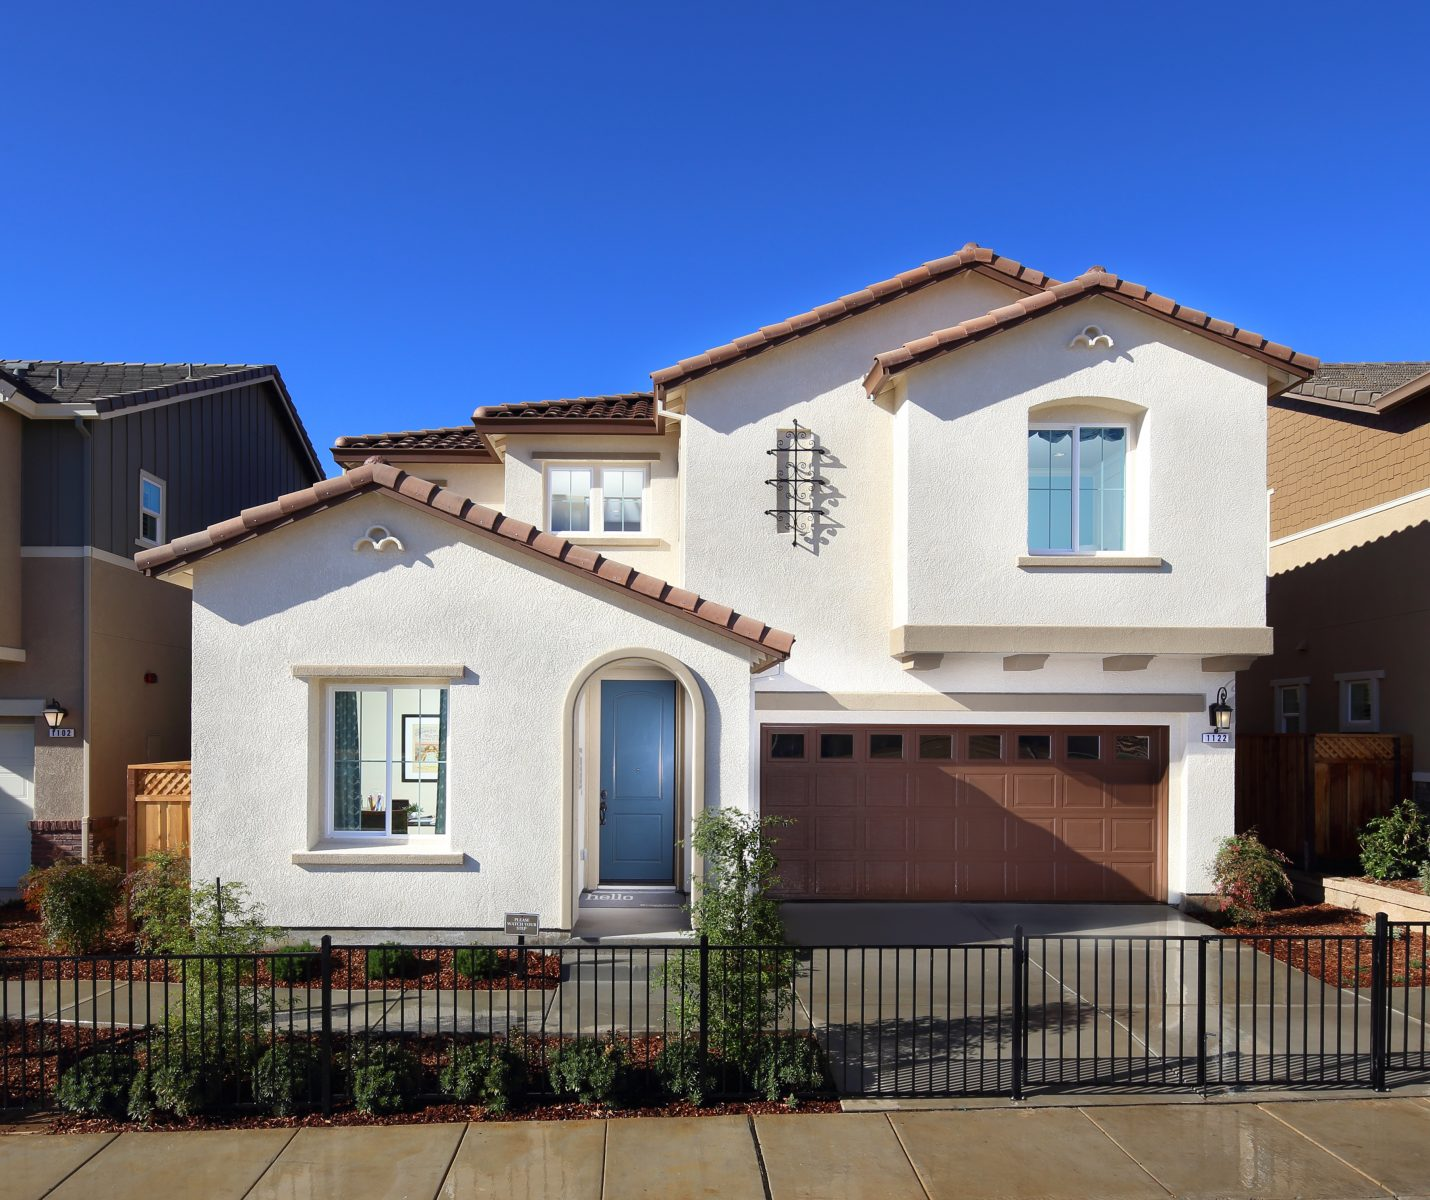 Exterior view of new luxury home | Ambrosia at Glen Loma Ranch in Gilroy, CA | Brookfield Residential